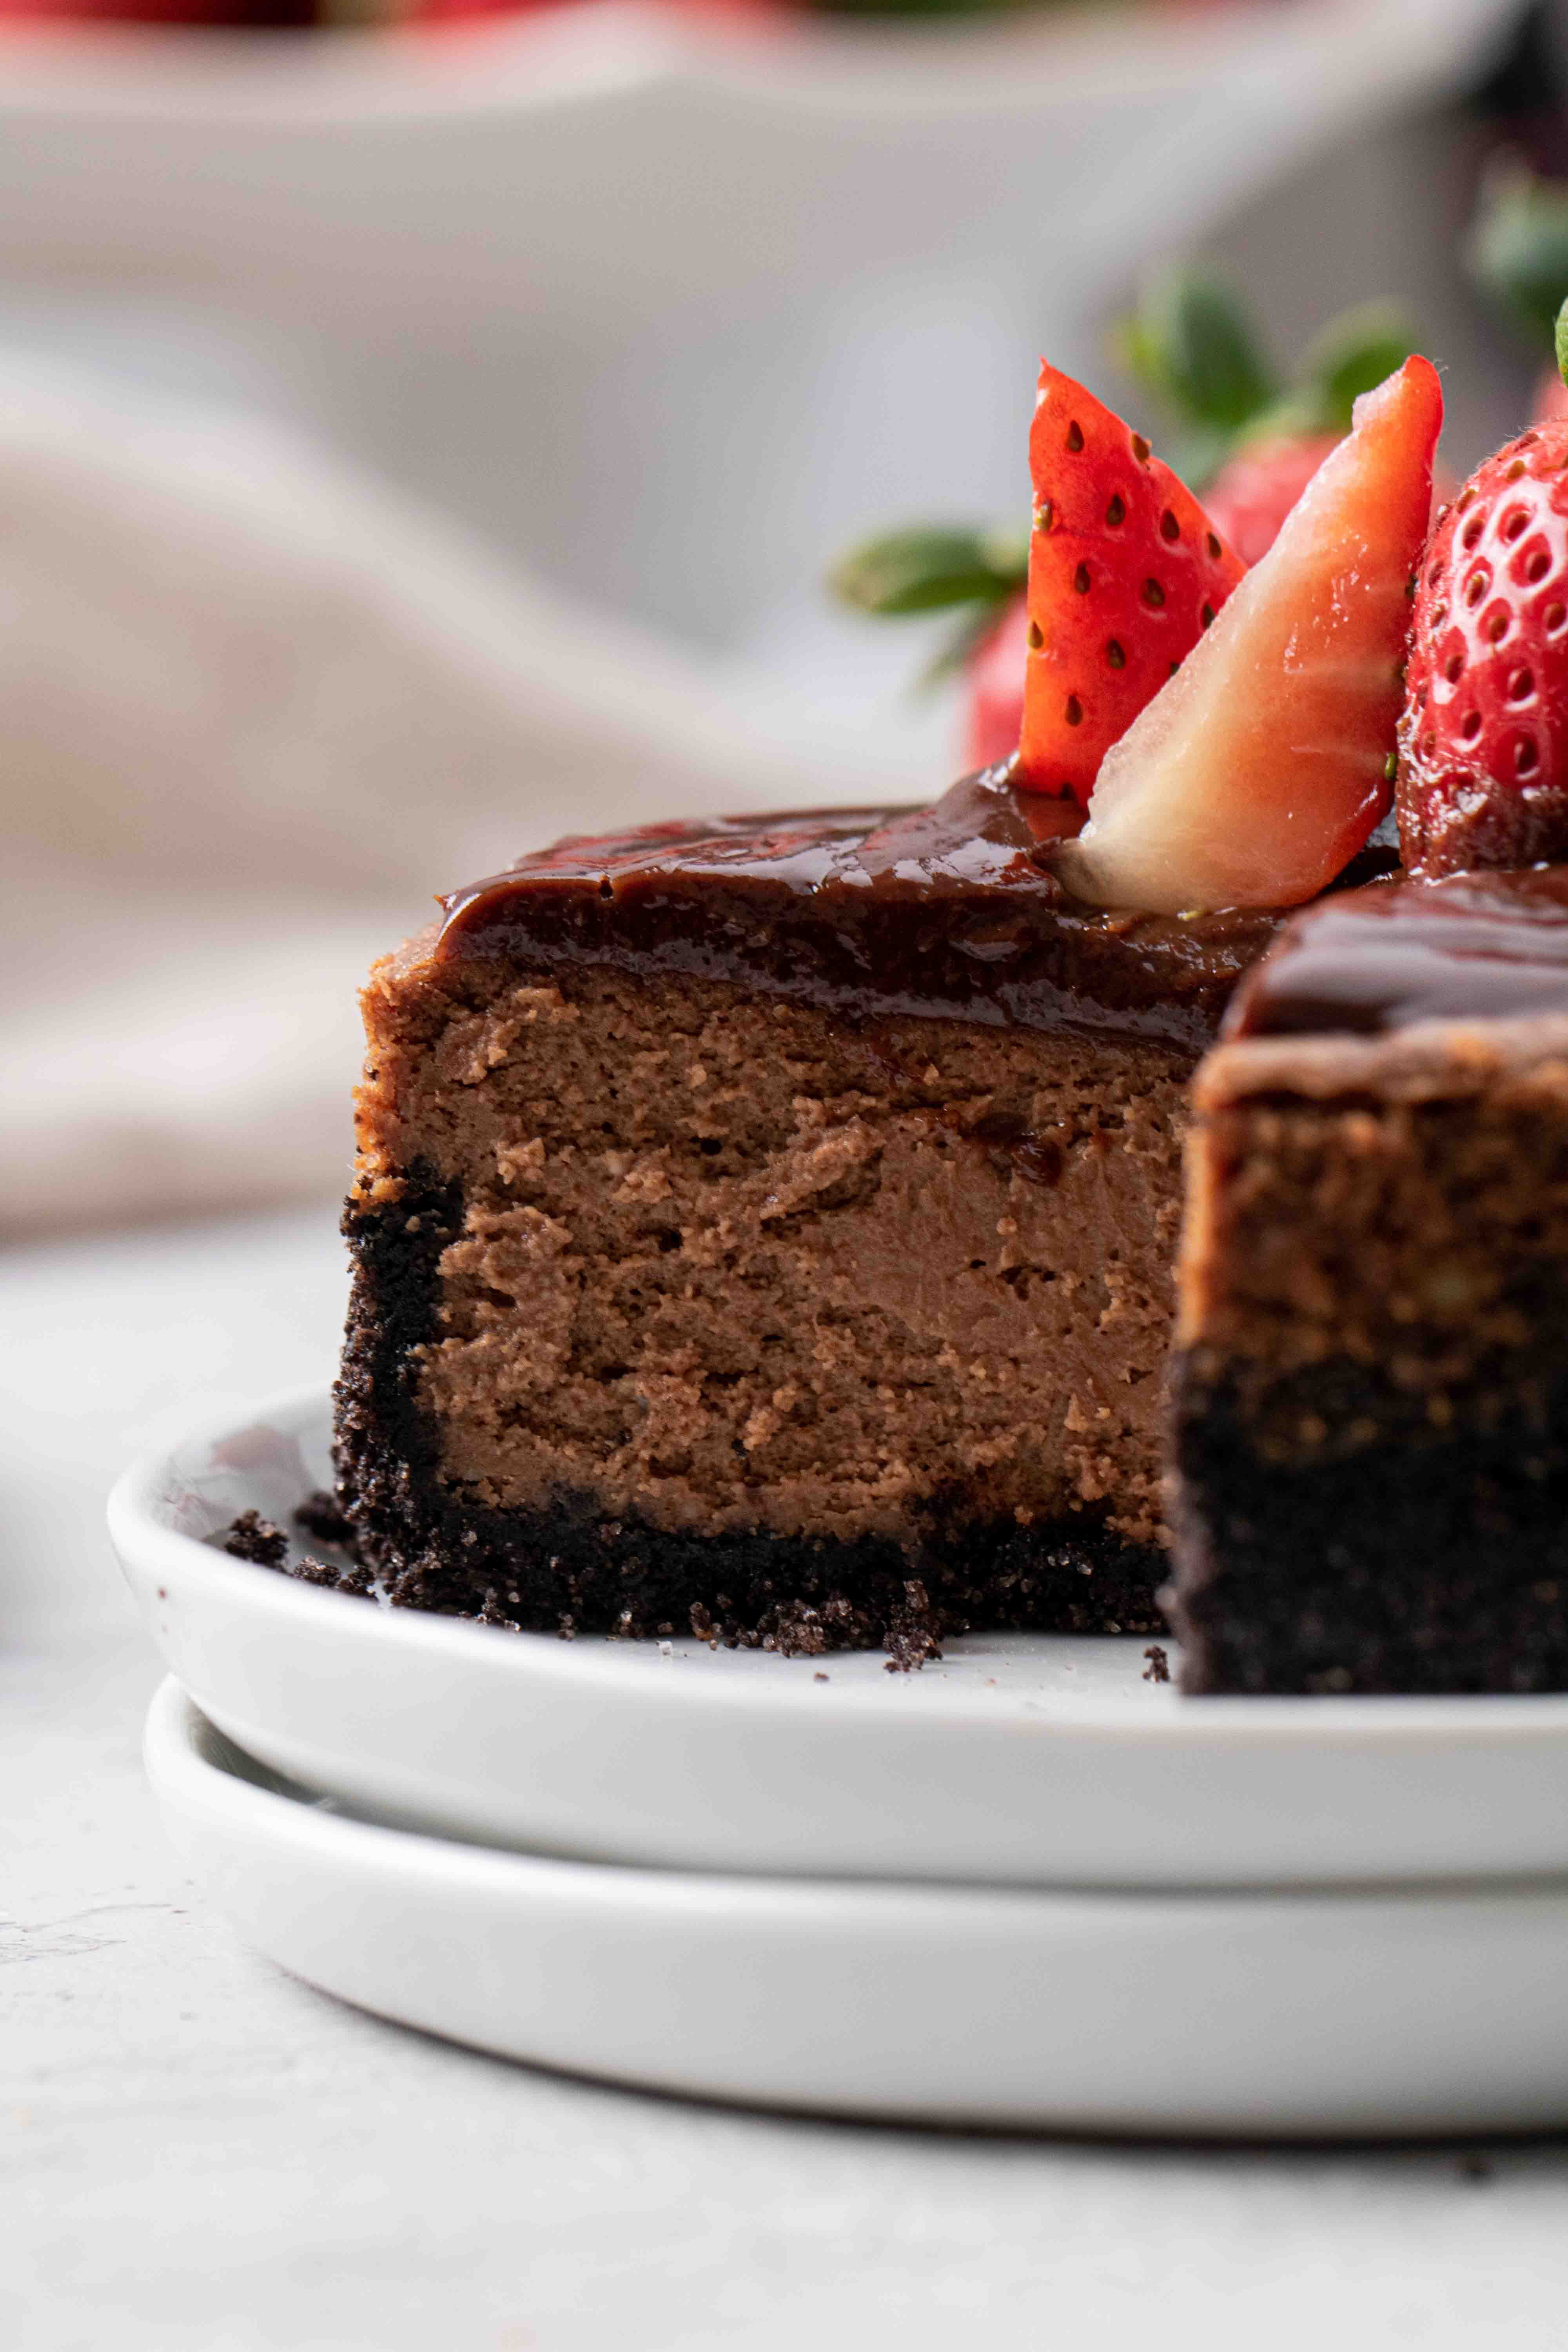 Strawberry topping on chocolate cheesecake